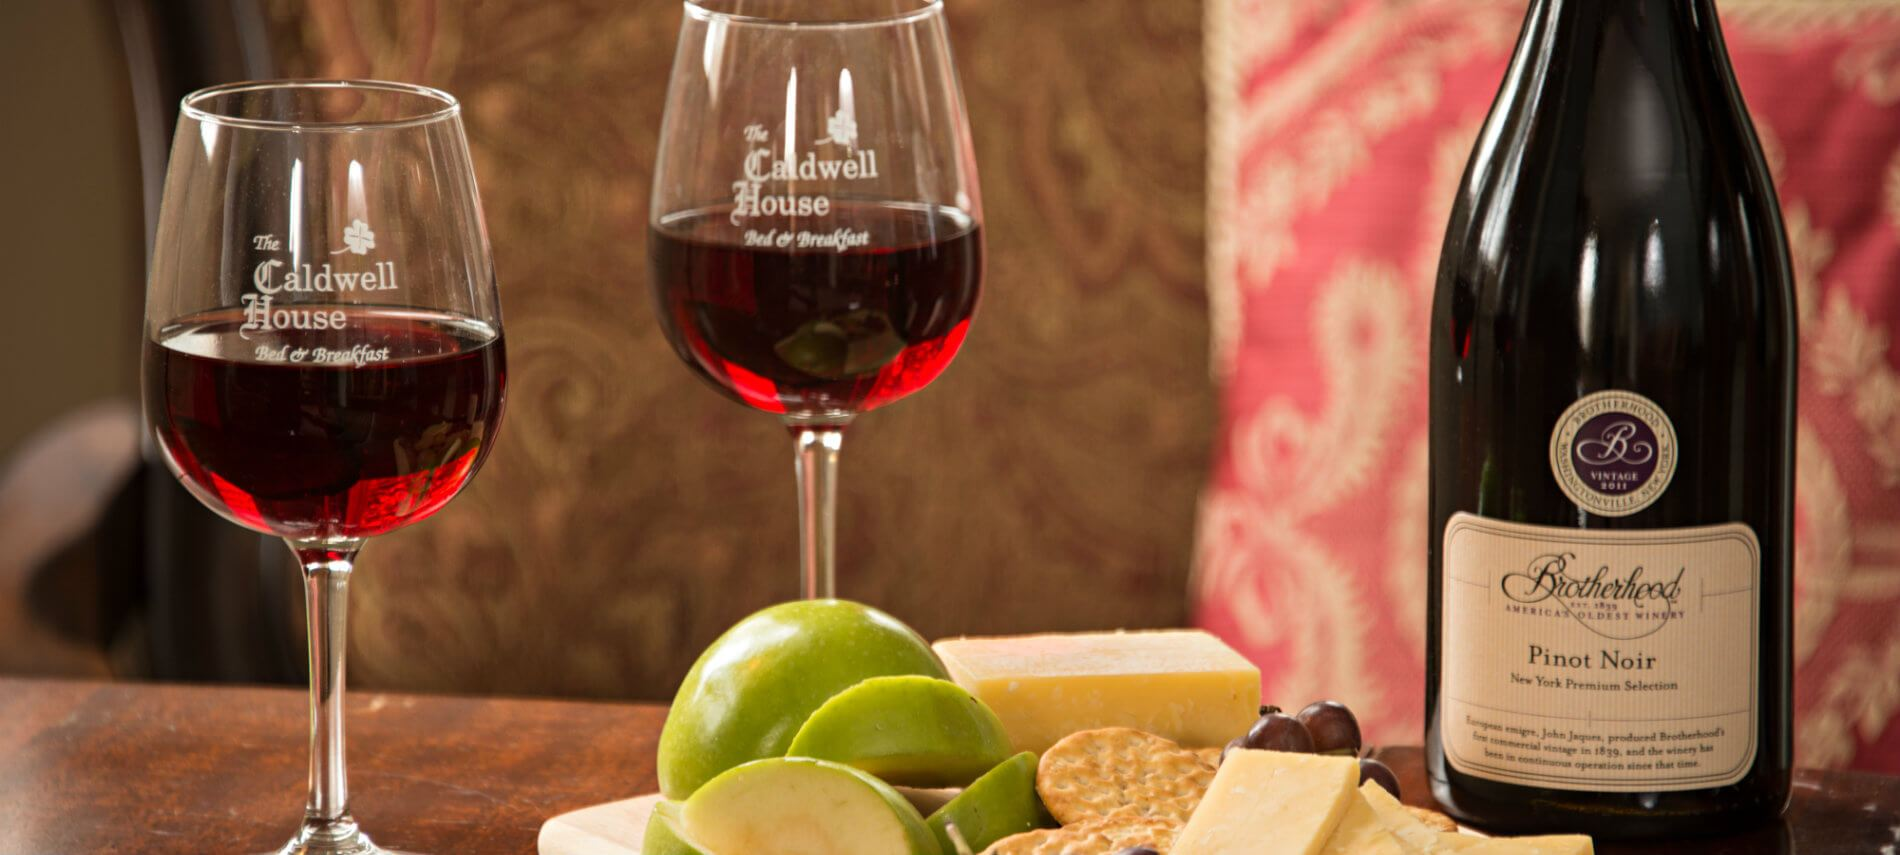 Enticing selection of healthy fruit, cheese, and crackers served with a bottle of Pinot Noir and two wine glasses